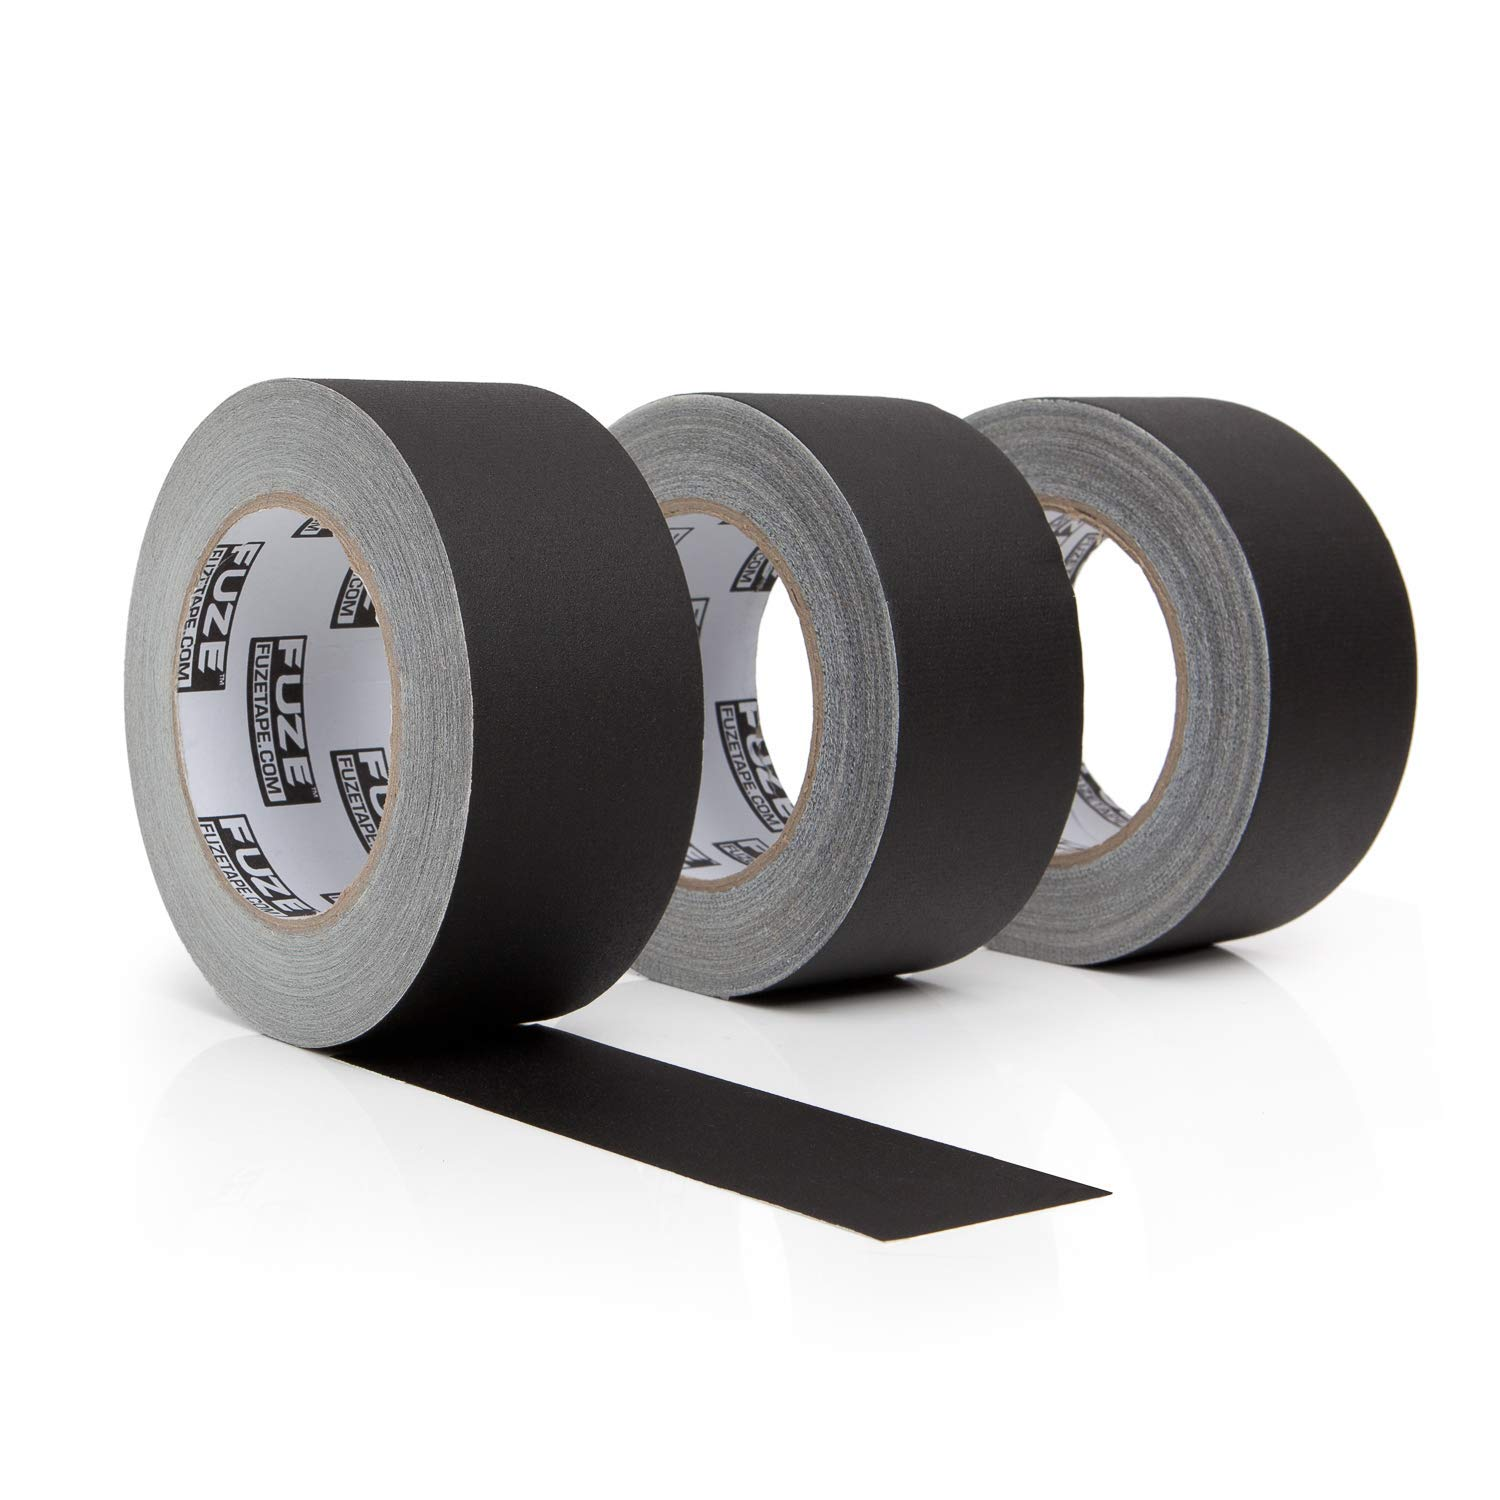 New: Black Gaffers Tape - 3 Pack, 30 Yards & 2 inch Wide- 3 roll Bulk Set Refills case. Multi-Pack Waterproof Gaffer Matte Cloth Fabric for pro Photography, Filming Backdrop, Production Equipment